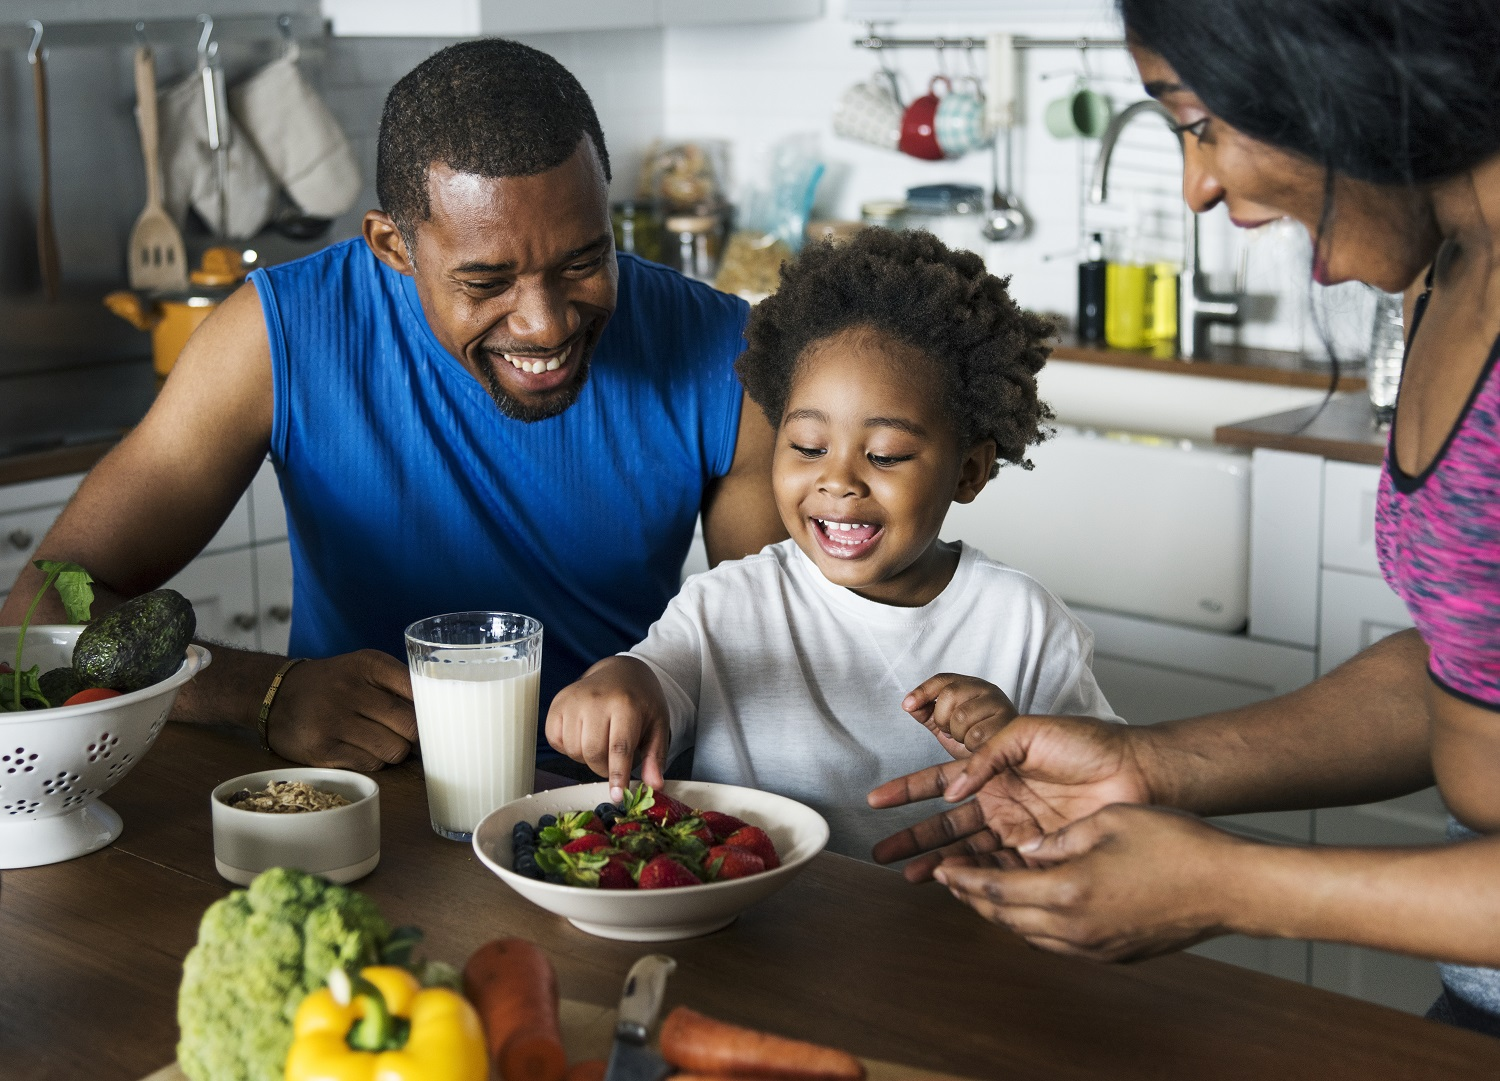 Maintaining Good Nutrition for Your Child During the COVID-19 Pandemic